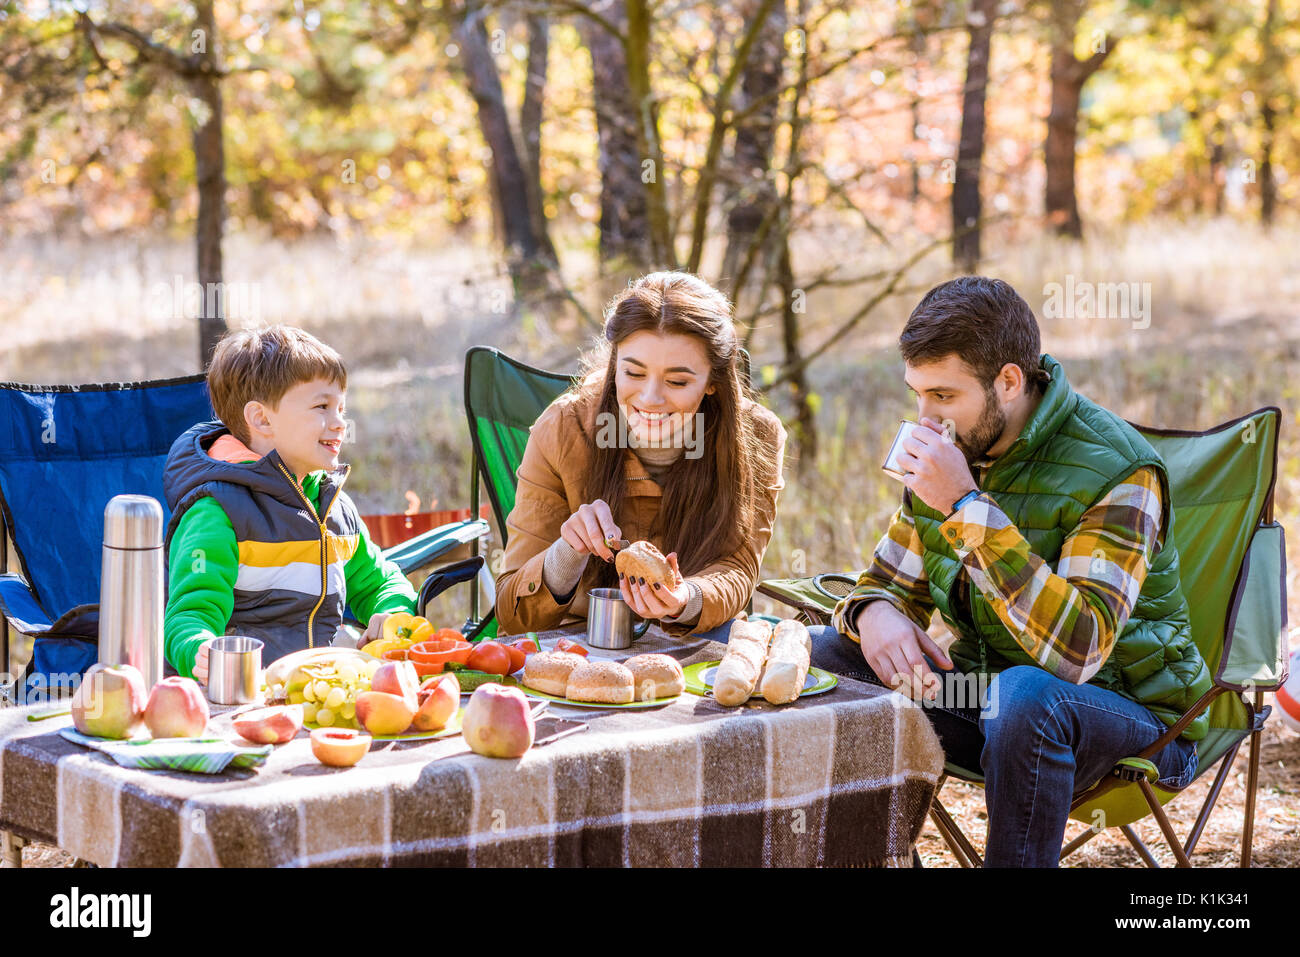 Happy smiling family eating and having fun while sitting at table on picnic in autumn forest - Stock Image